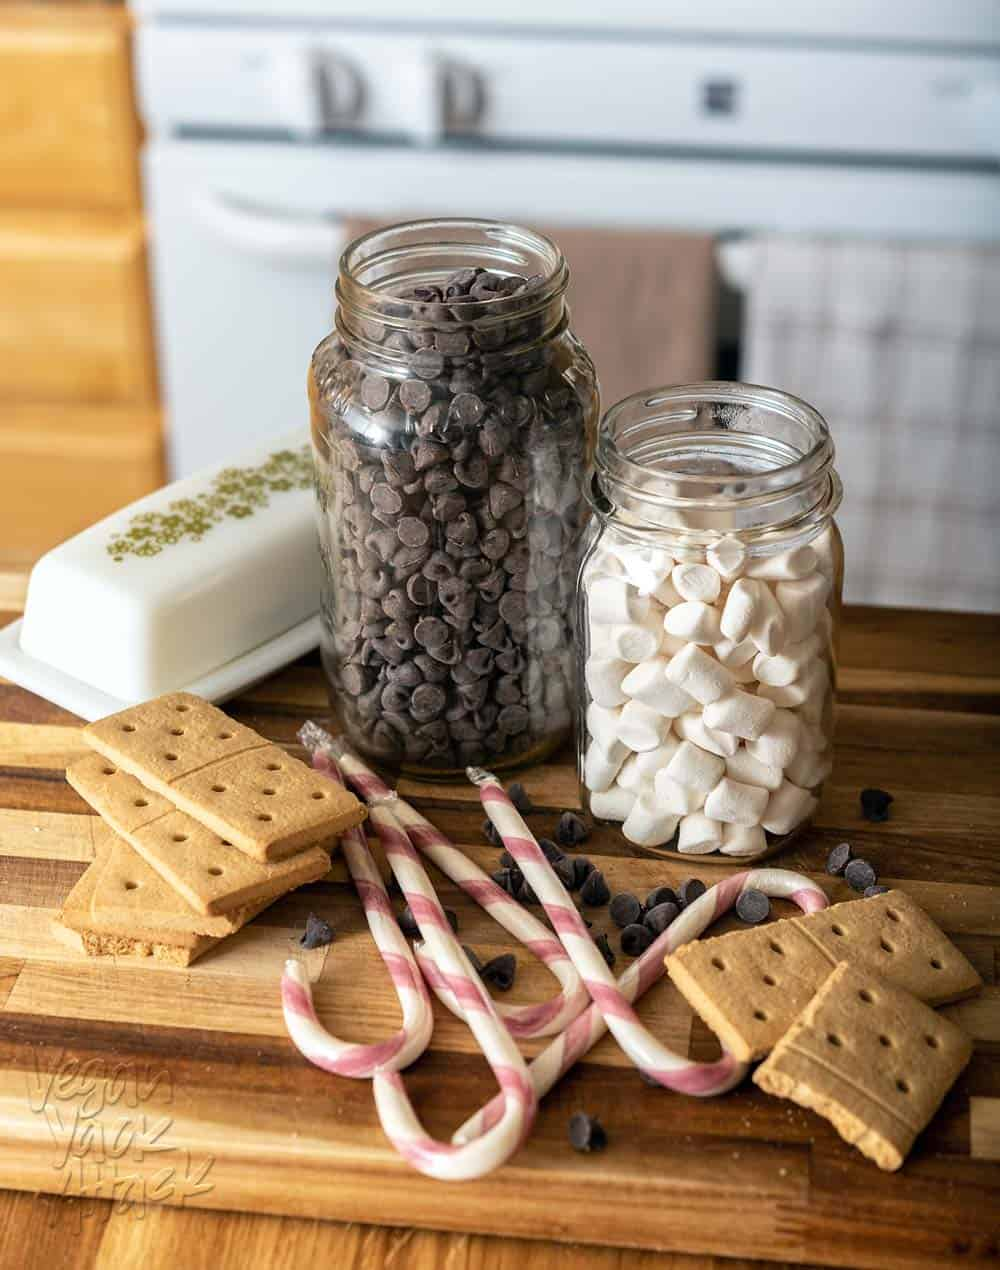 A jars of vegan marshmallows and chocolate chips, near graham crackers, candy canes and a butter dish